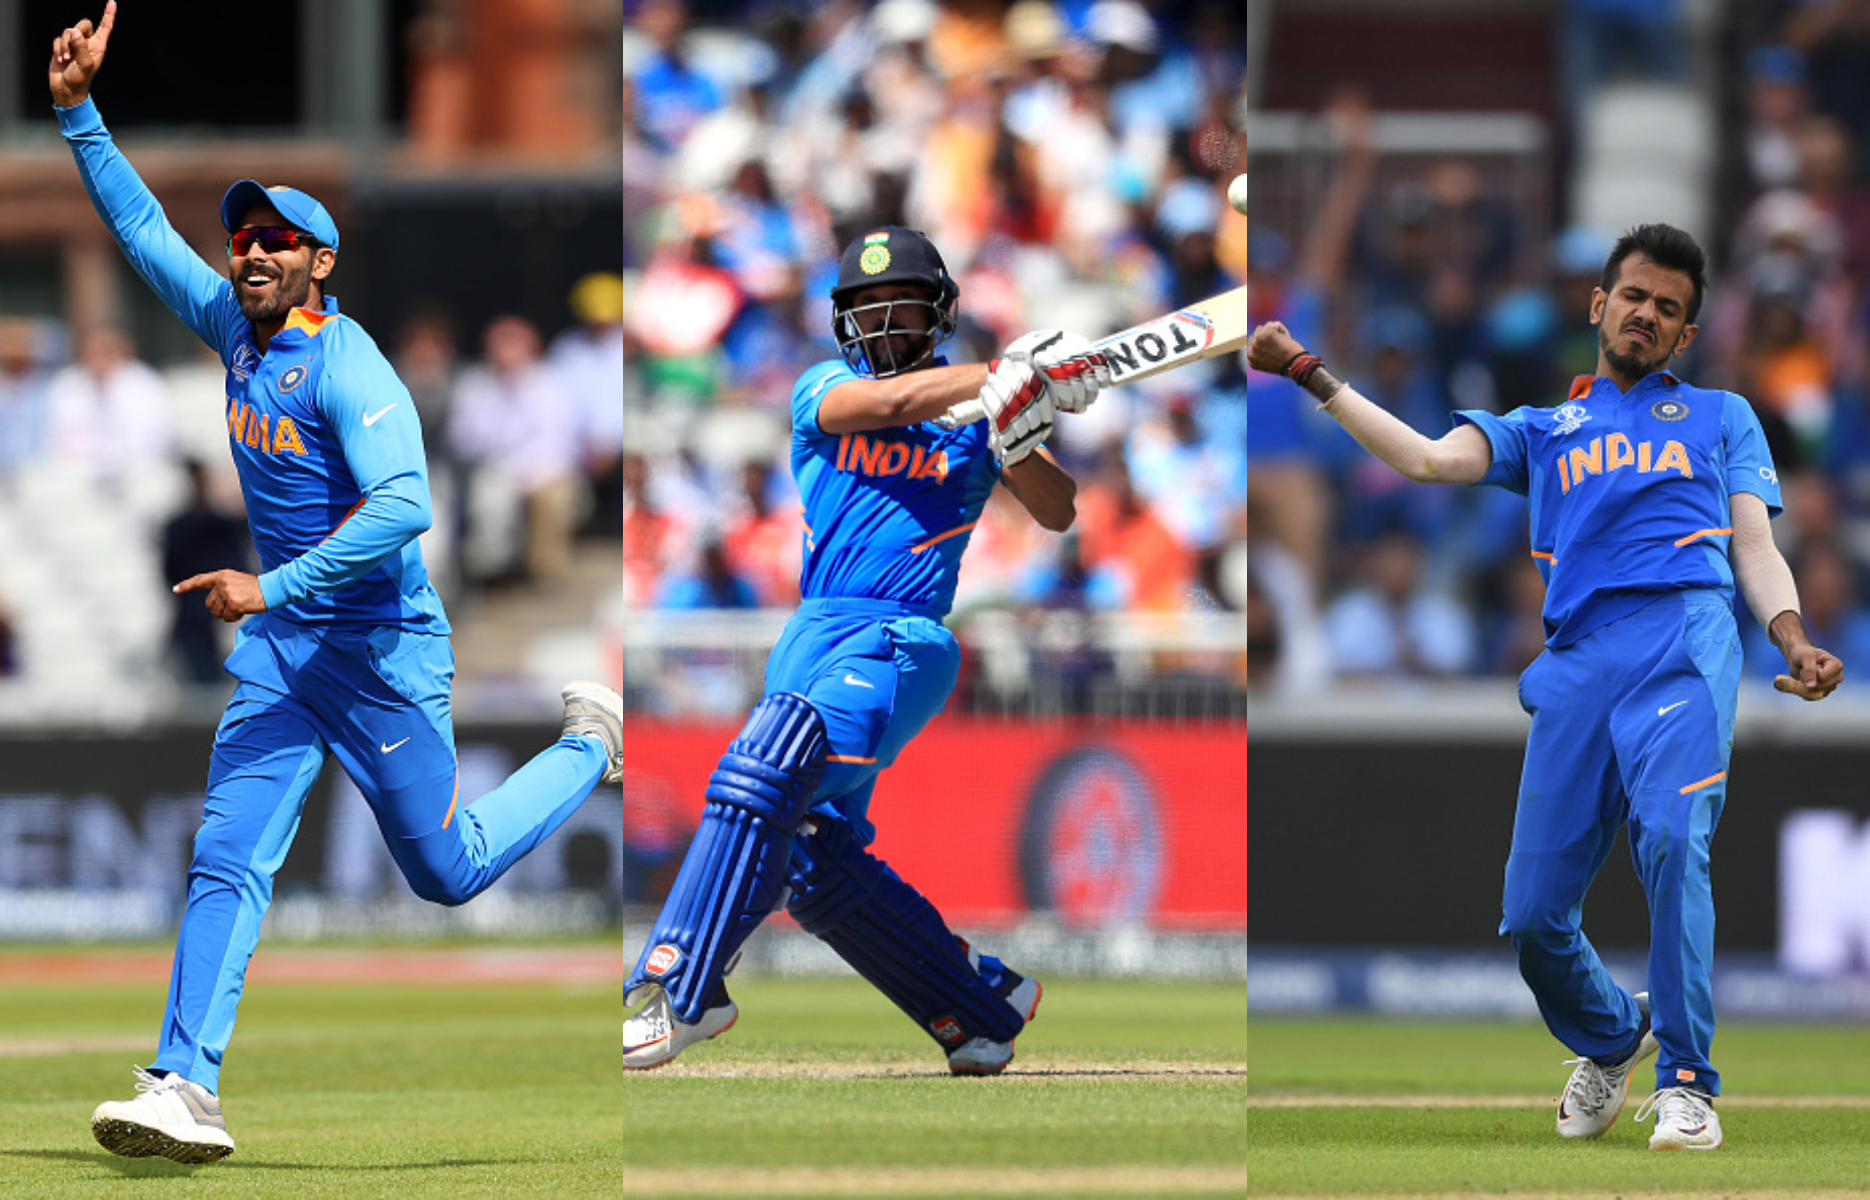 Jadeja, Chahal and Jadhav will be the all-rounder and spinners | Getty